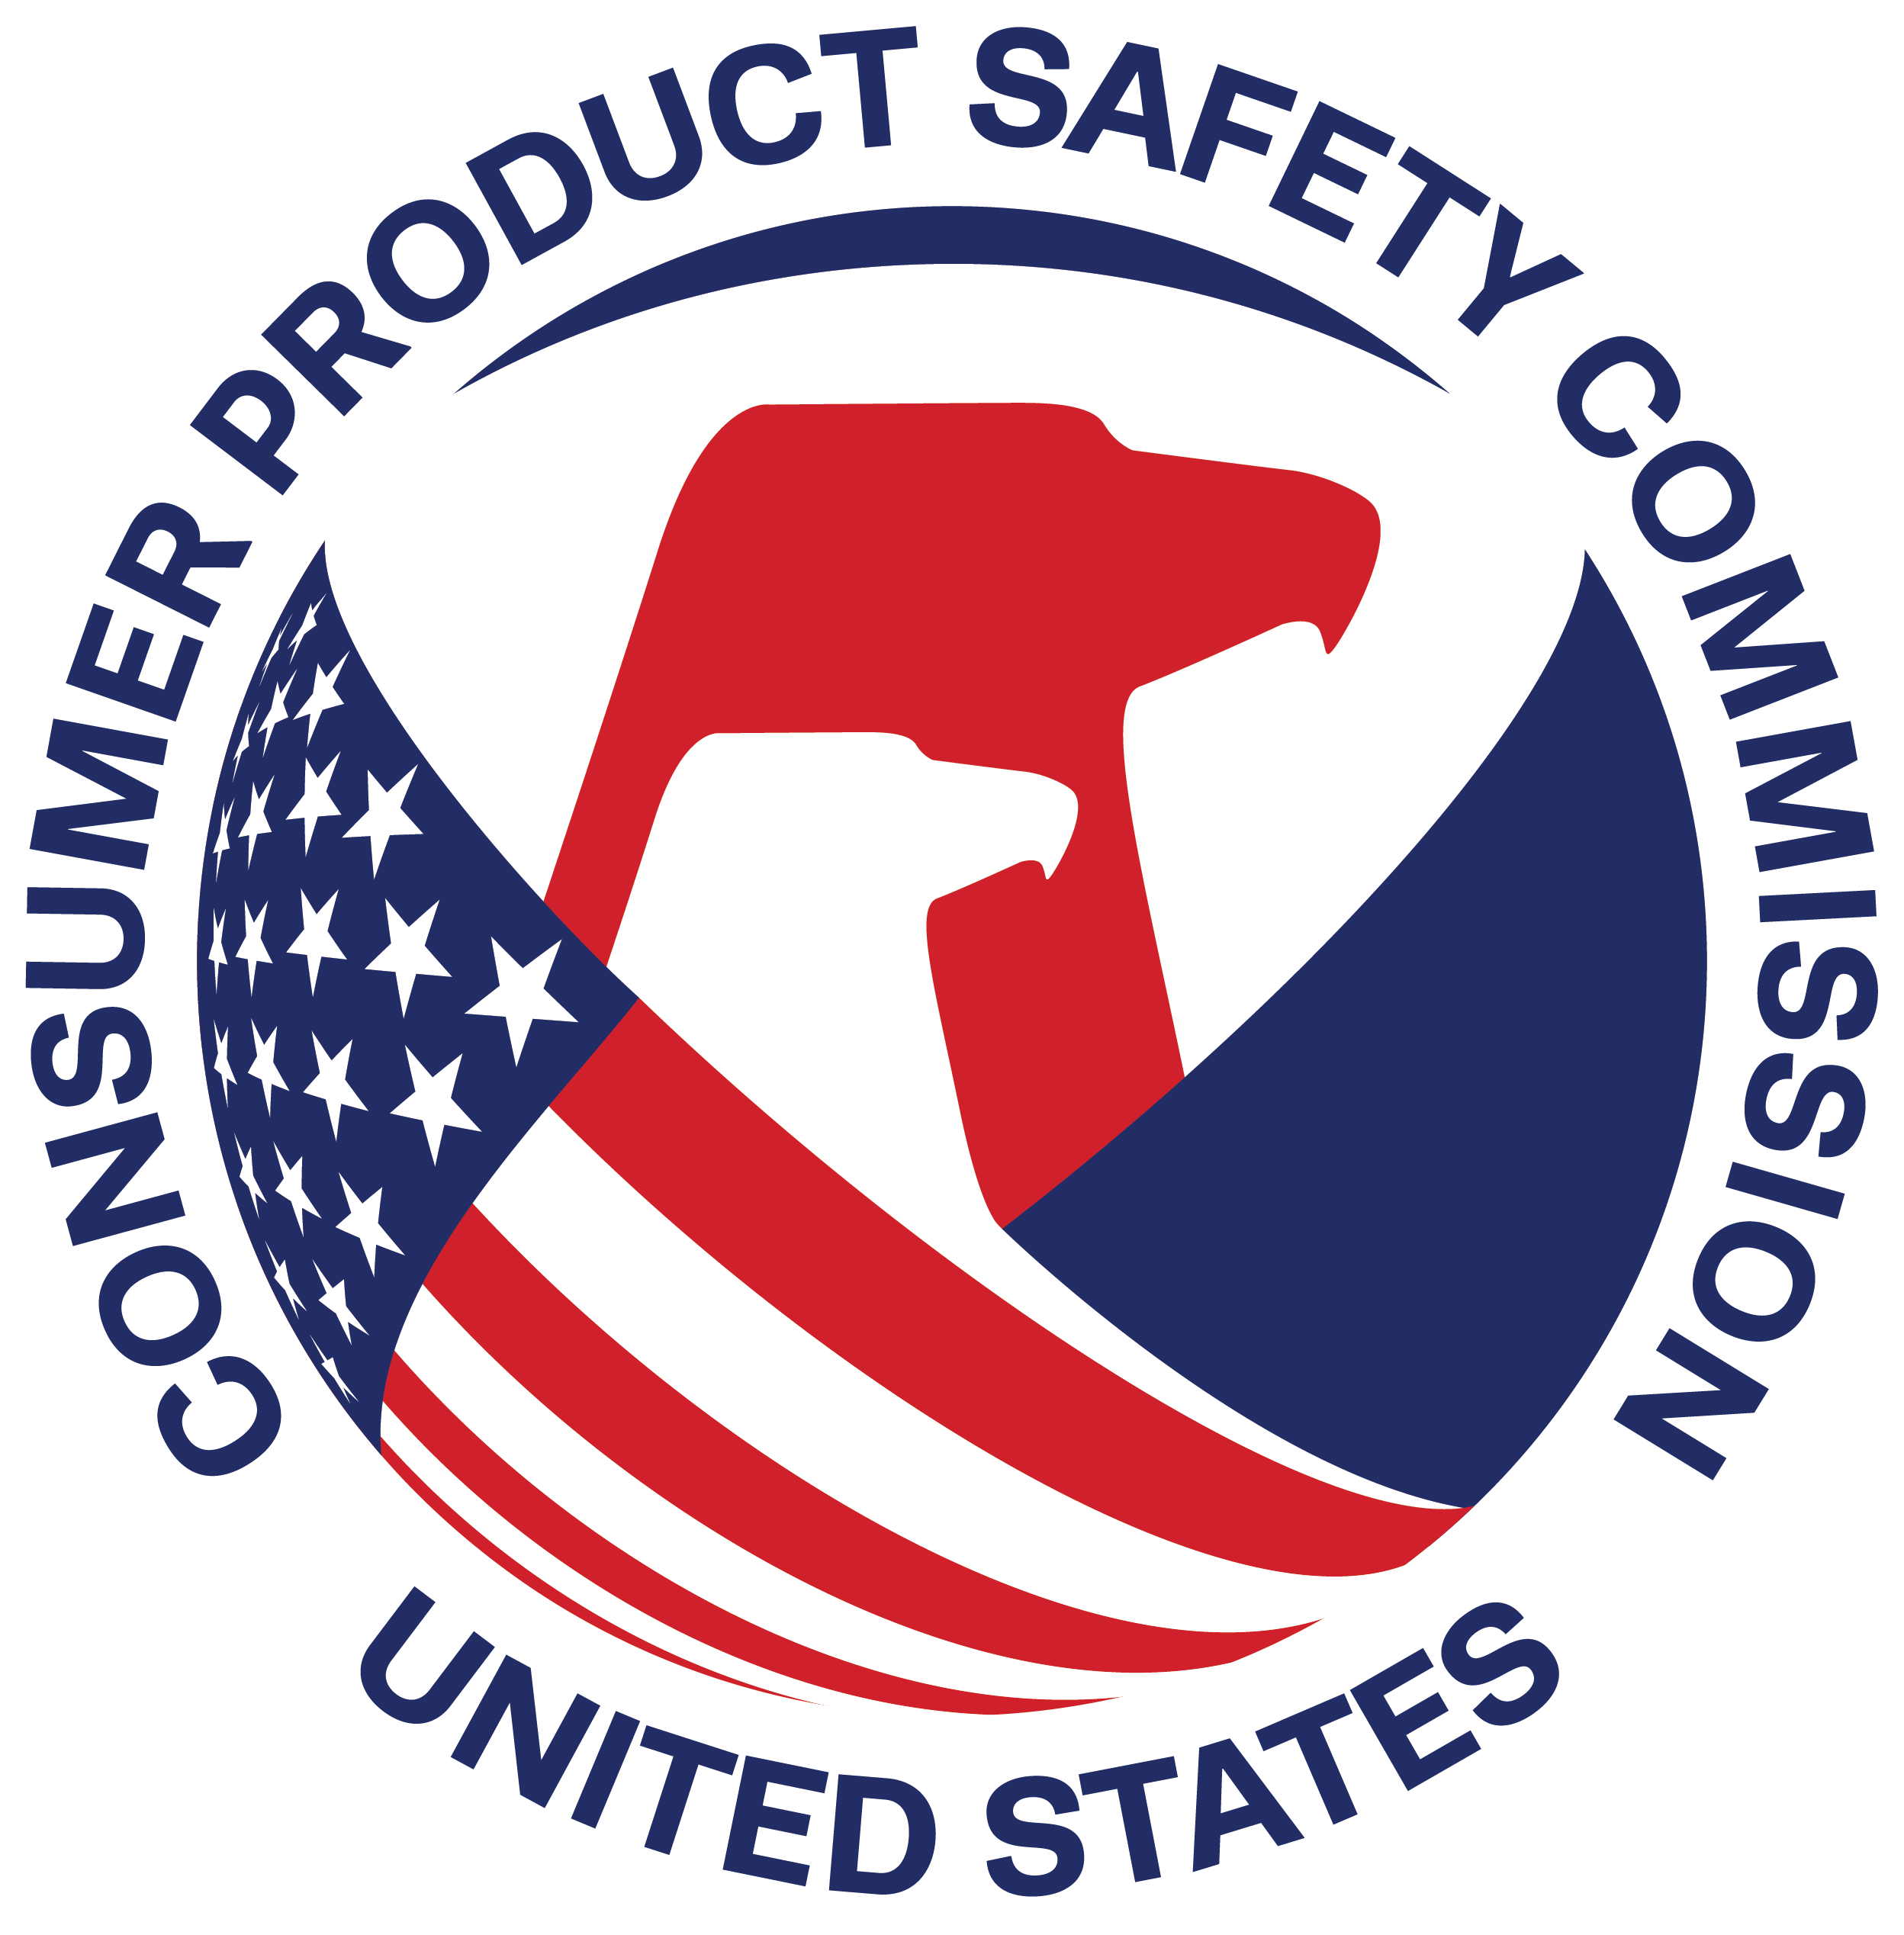 CPSC, Canadian, Mexican Consumer Safety Counterparts Create Consensus Recommendations on Product Testing